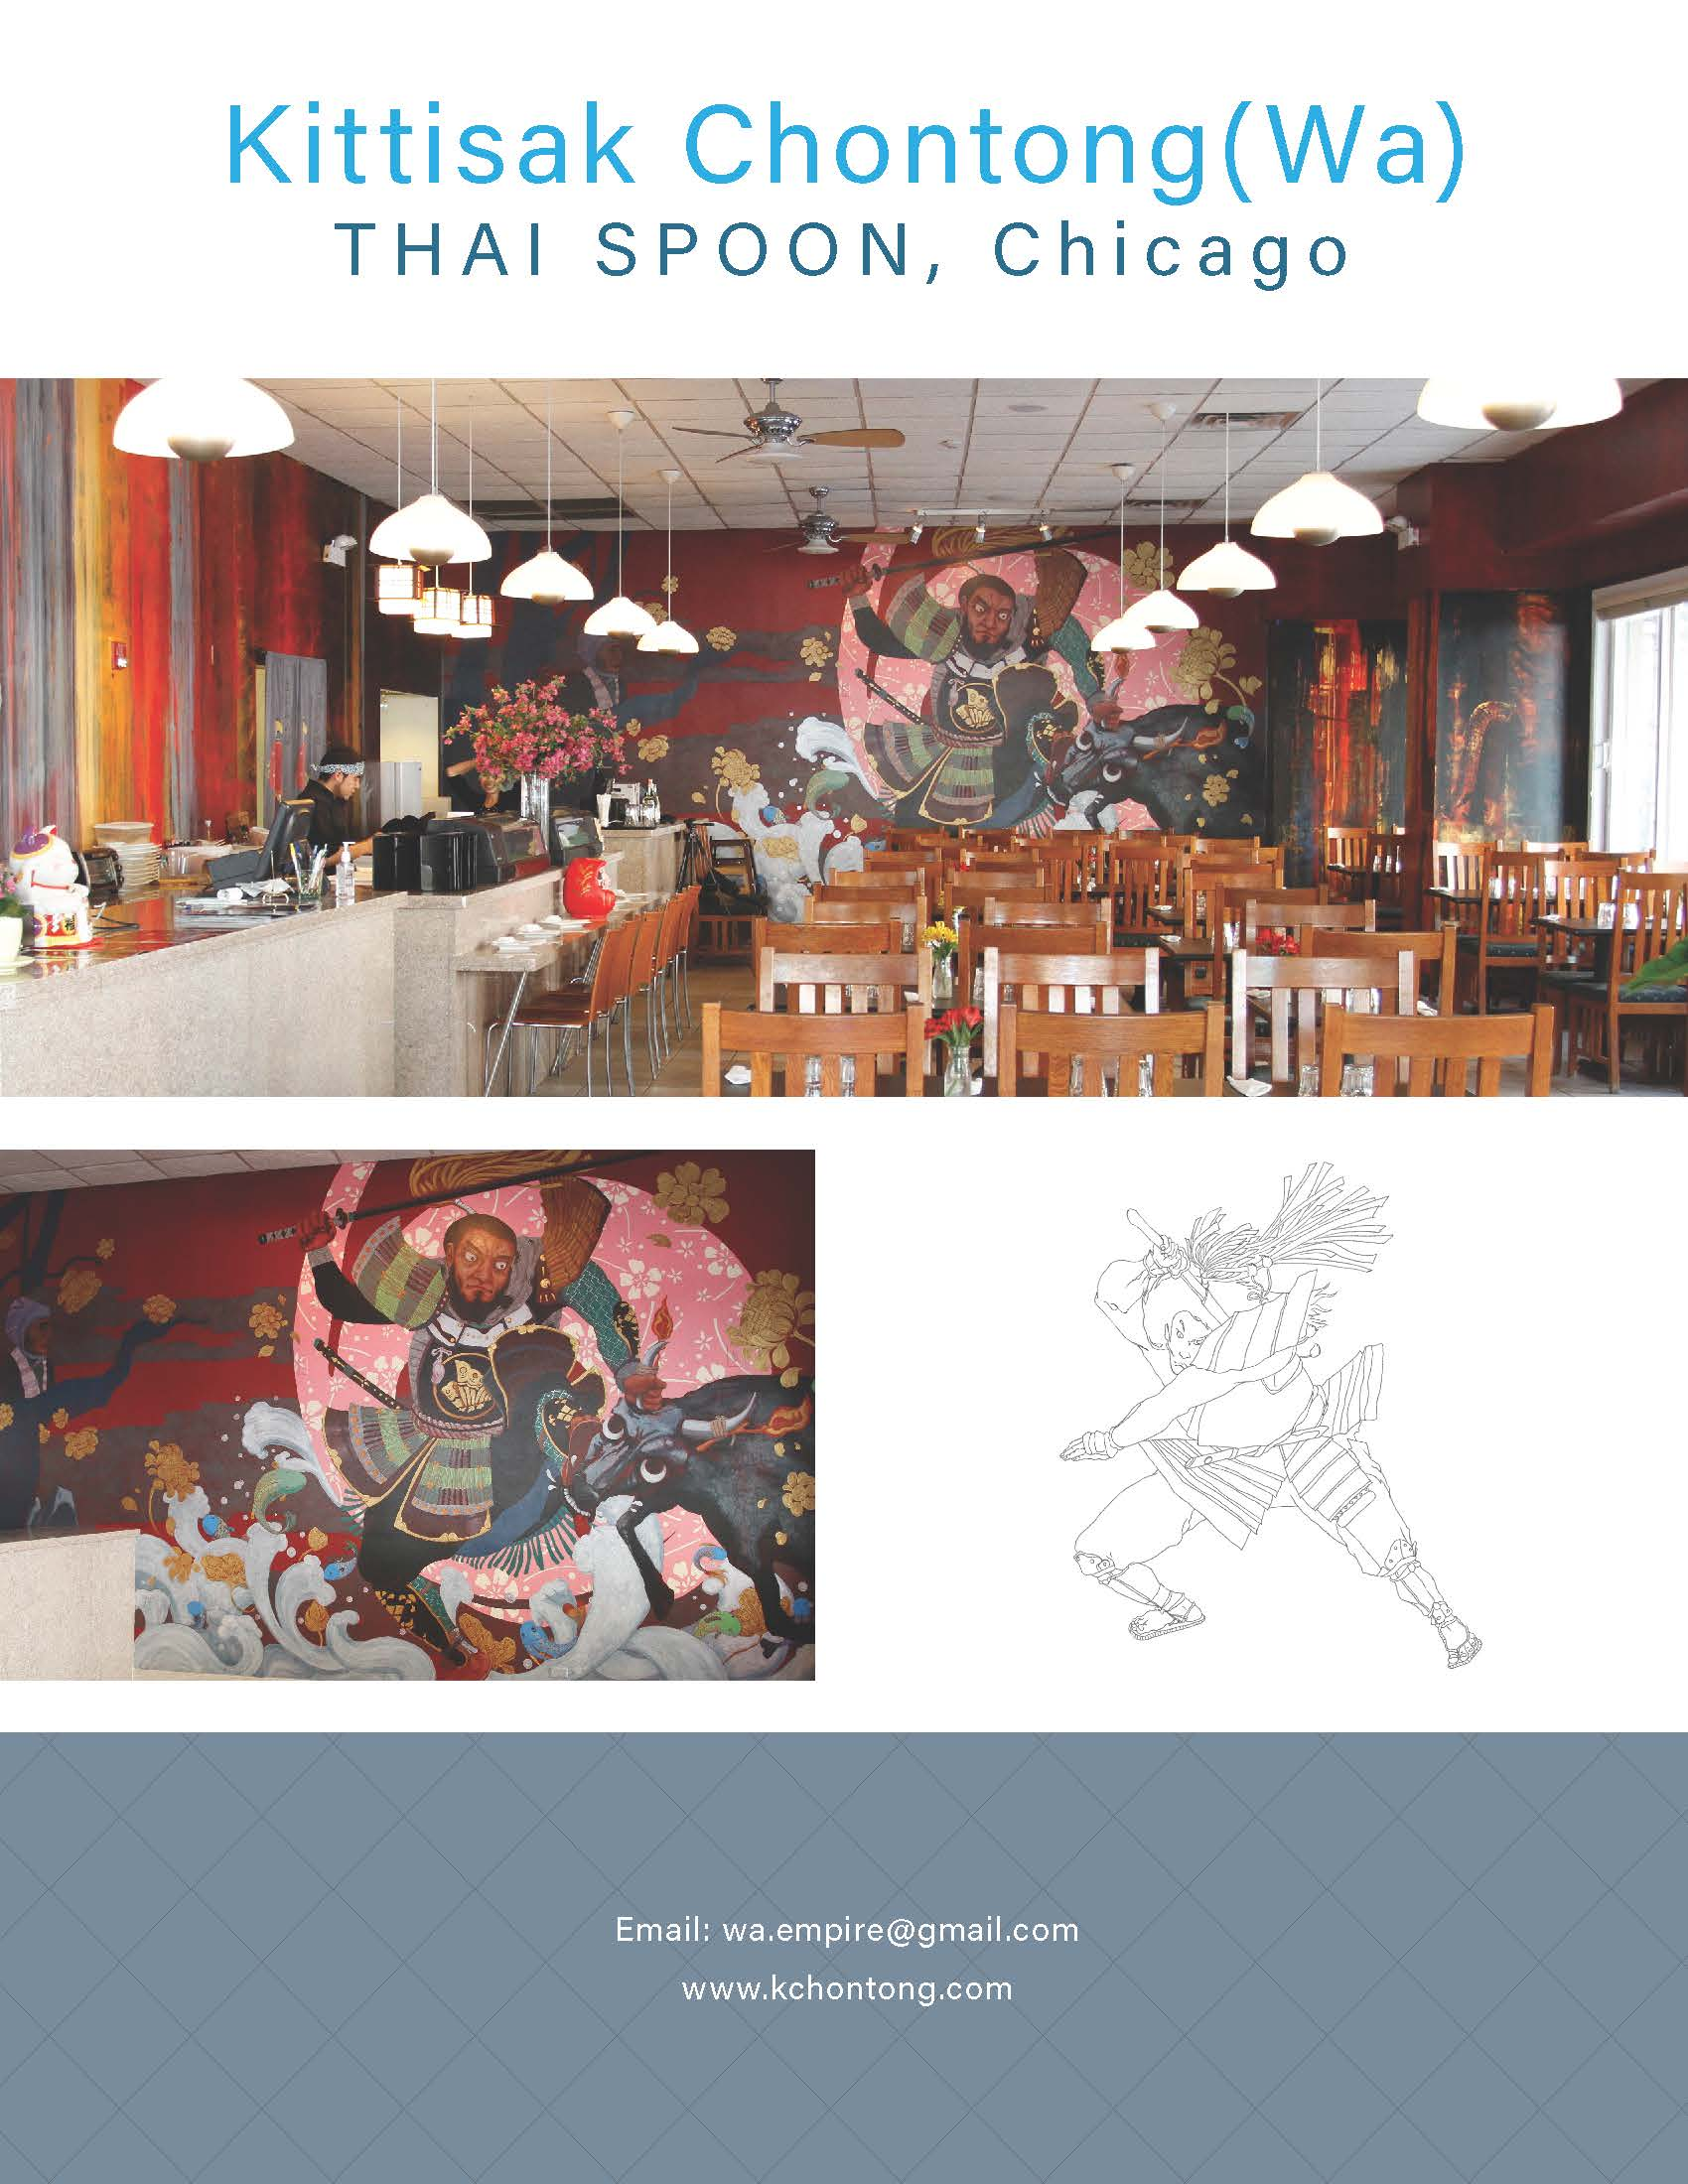 Mural painting for Thai Spoon, Chicago